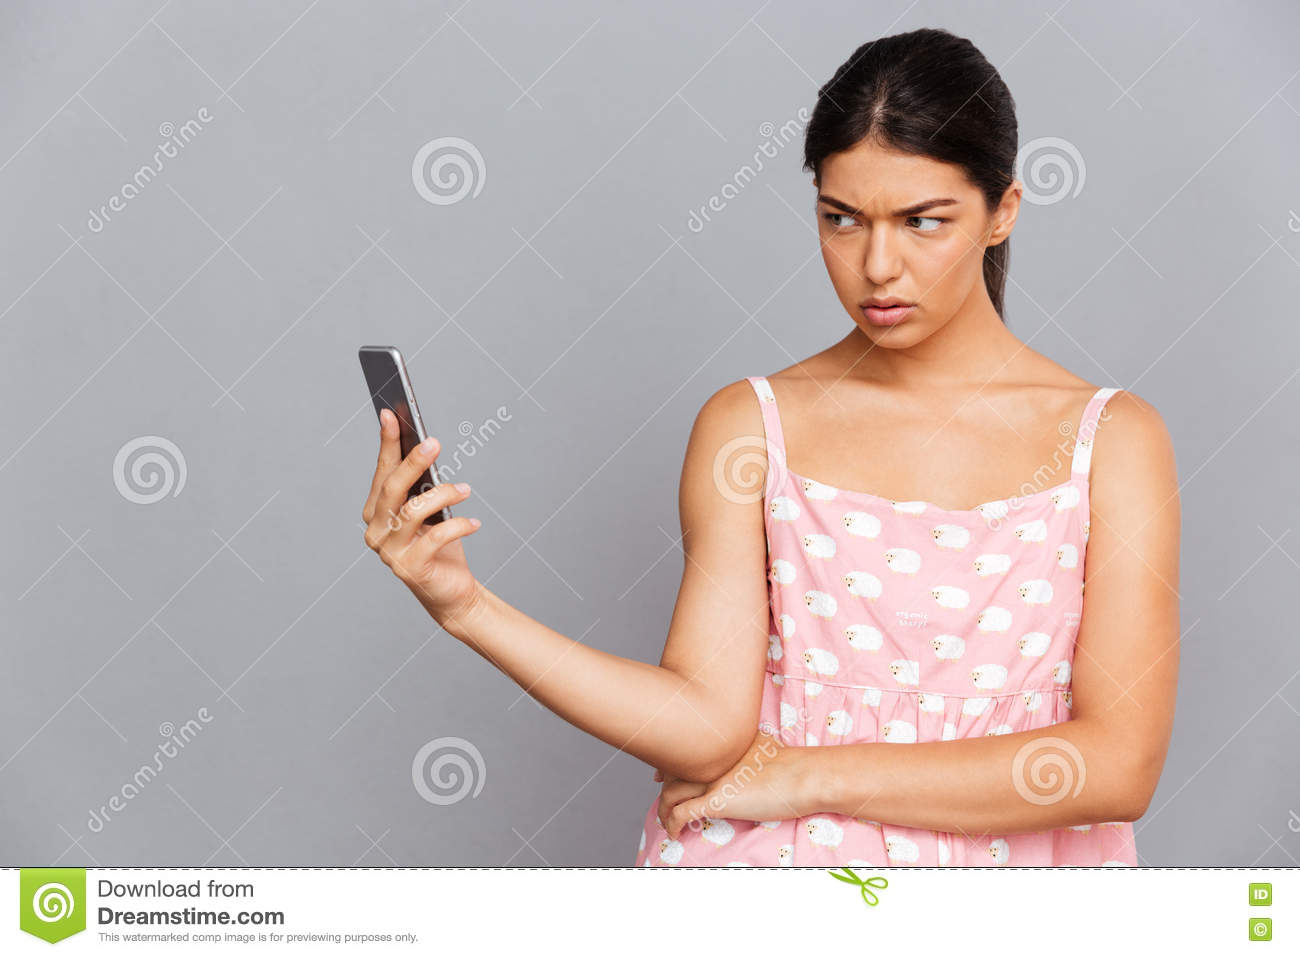 Woman Making Selfie Photo On Smartphone Stock Photography ...